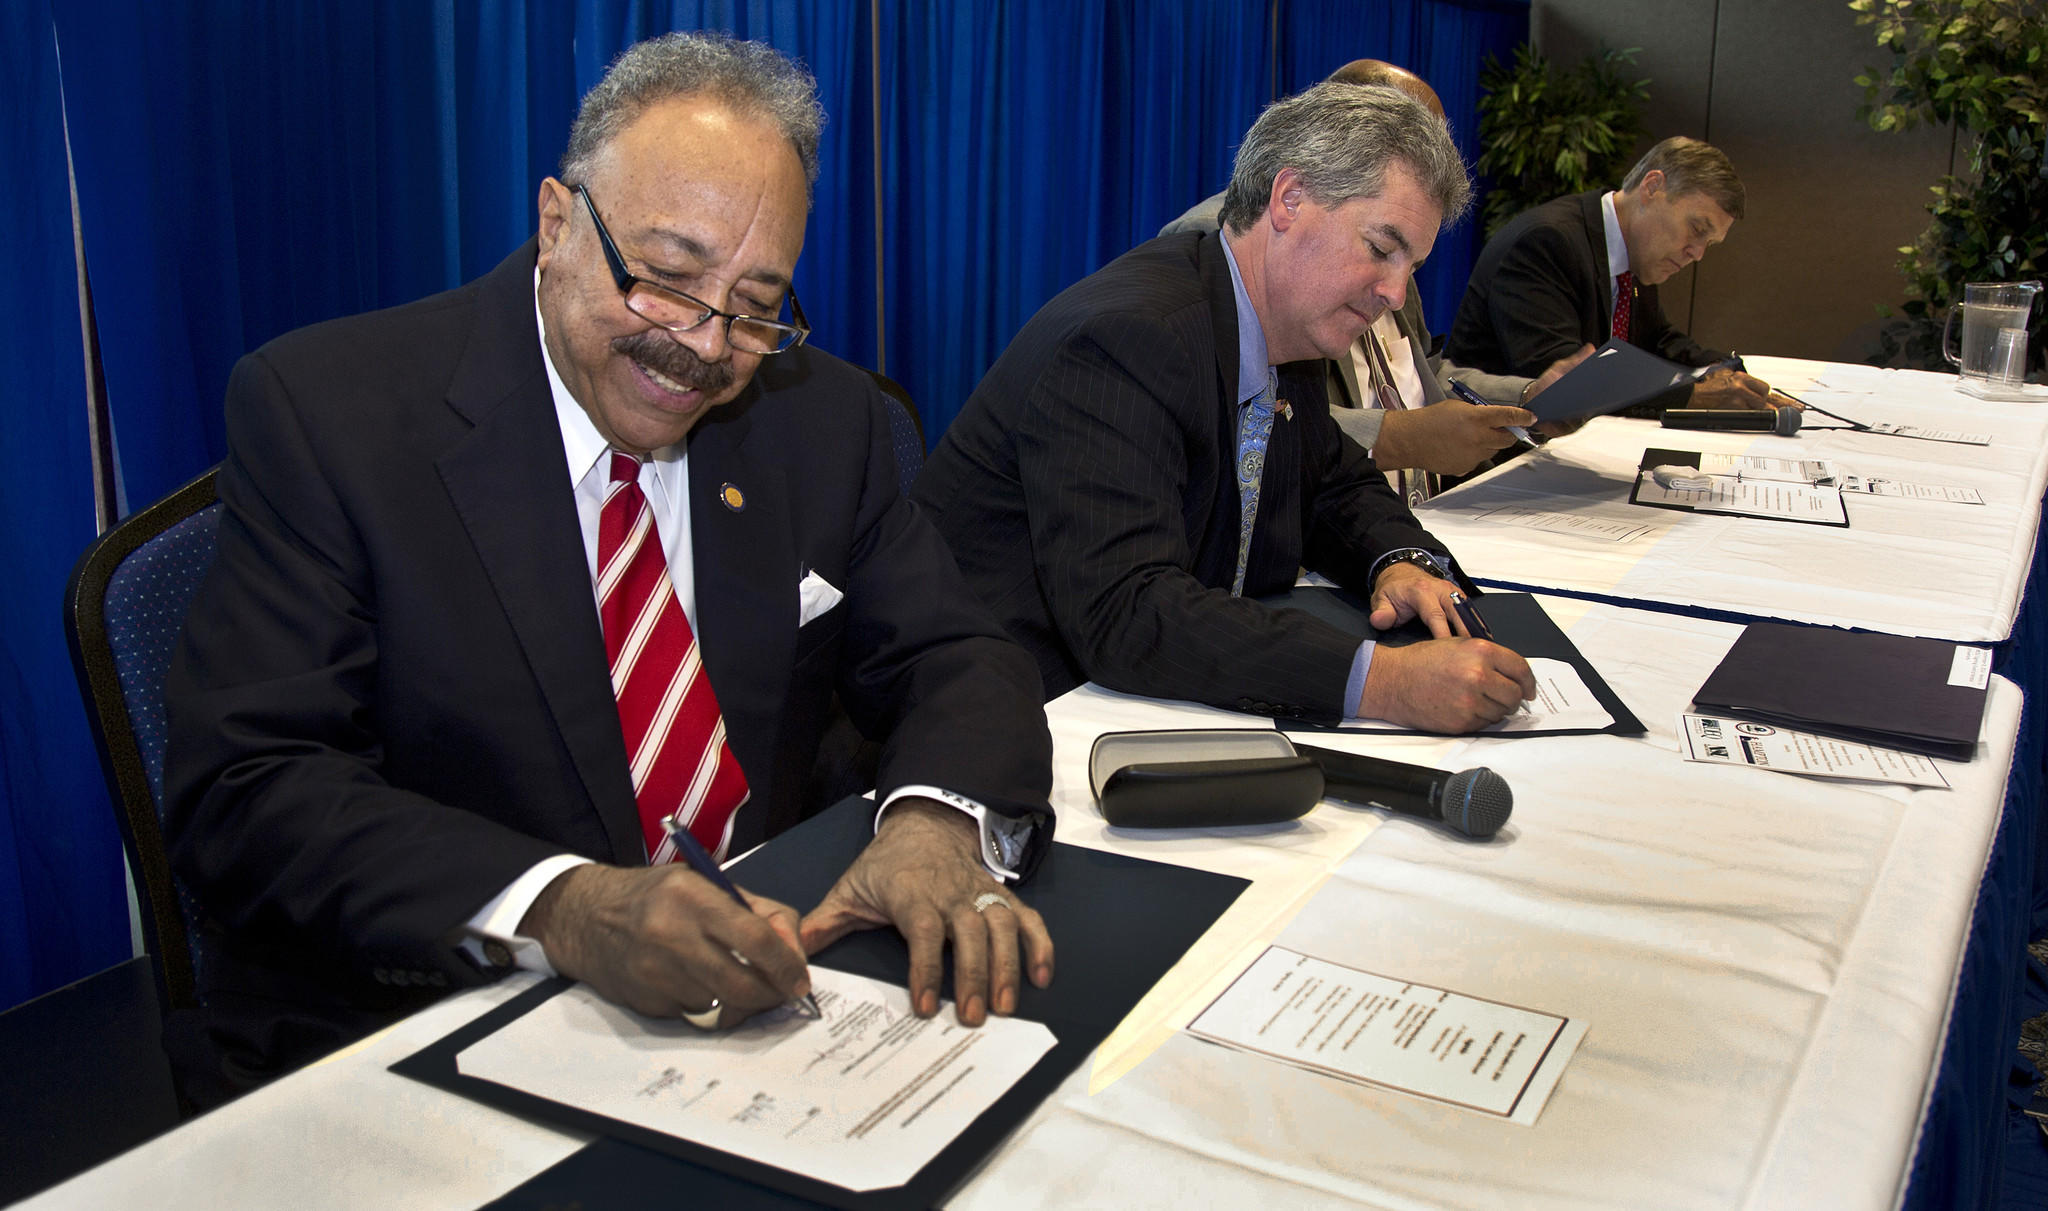 "Hampton University, Norfolk State, DEQ and the EPA announce a new initiative that will boost minority involvement in STEM Fields and ""green"" jobs. Pictured signing a memorandum of understanding: Left to right, Dr. William R. Harvey, Hampton University President; Shawn M. Garvin, Mid-Atlantic Regional Administrator for the EPA; Eddie N. Moore, Norfolk State interim president; and David Paylor, director of the Virginia Department of Environmental Quality."